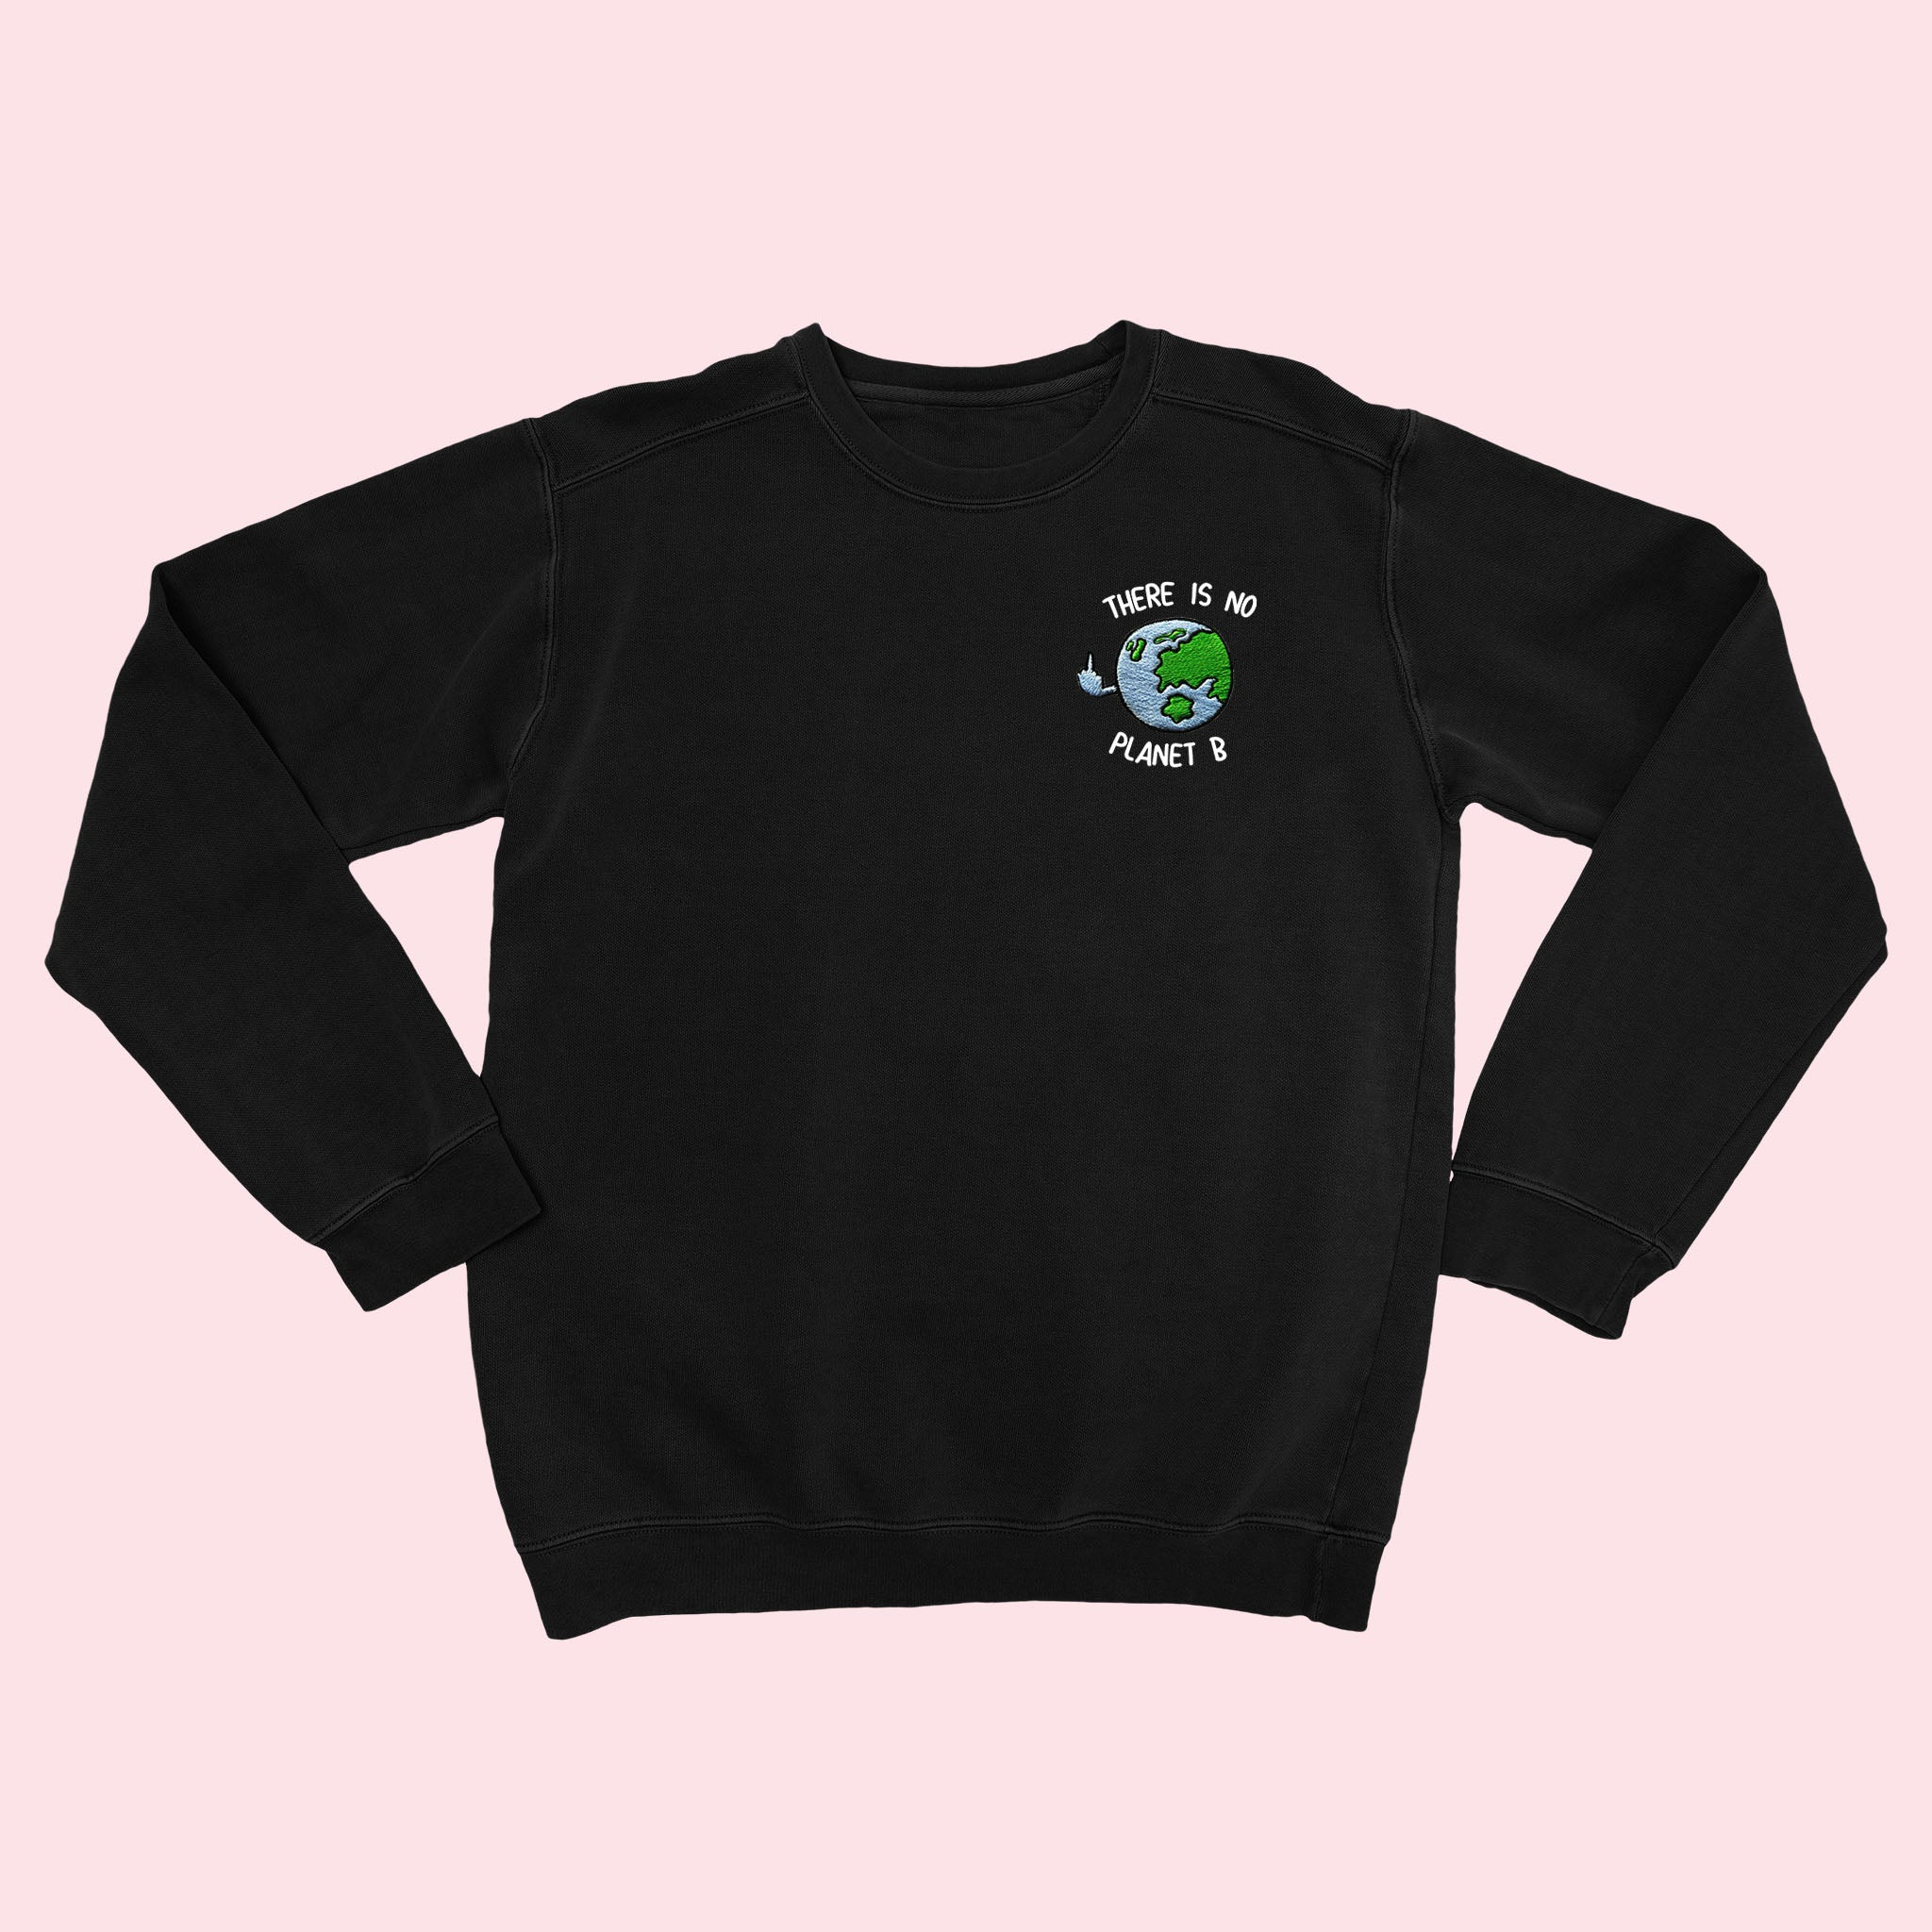 PLANET B- Organic Embroidered Sweater